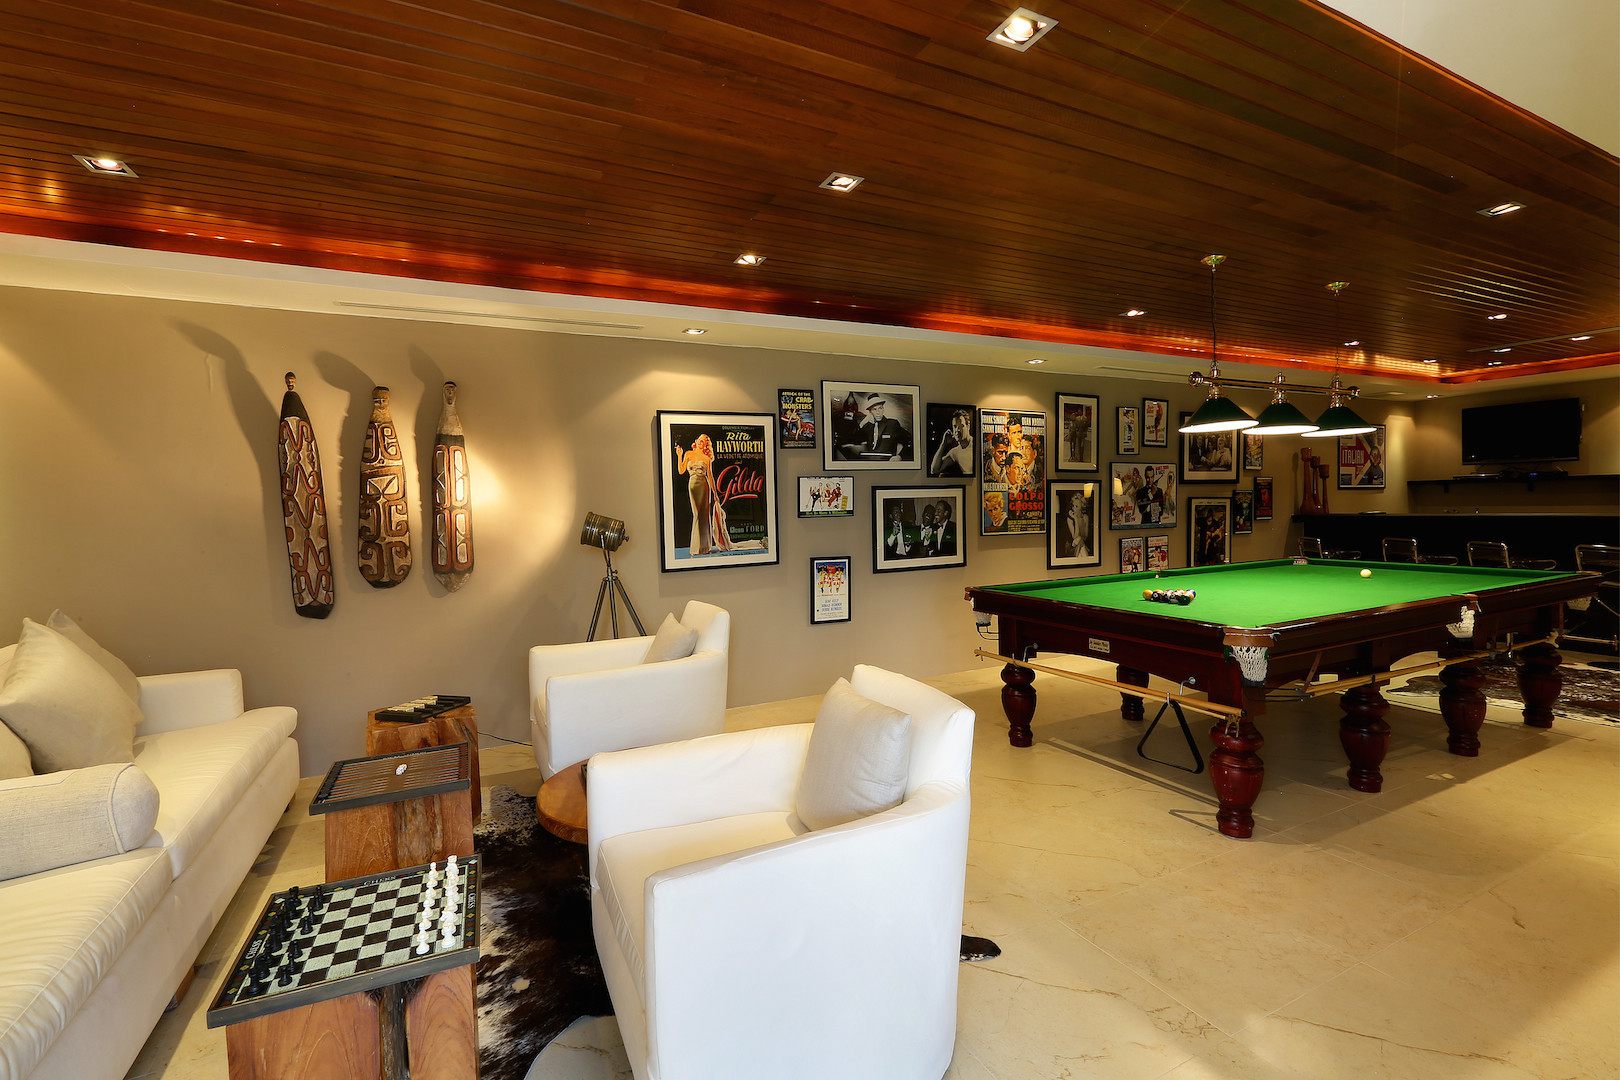 Best ideas about Luxury Game Room . Save or Pin 10 Relaxing & Fun Things to Do When Staying at Luxury Villas Now.